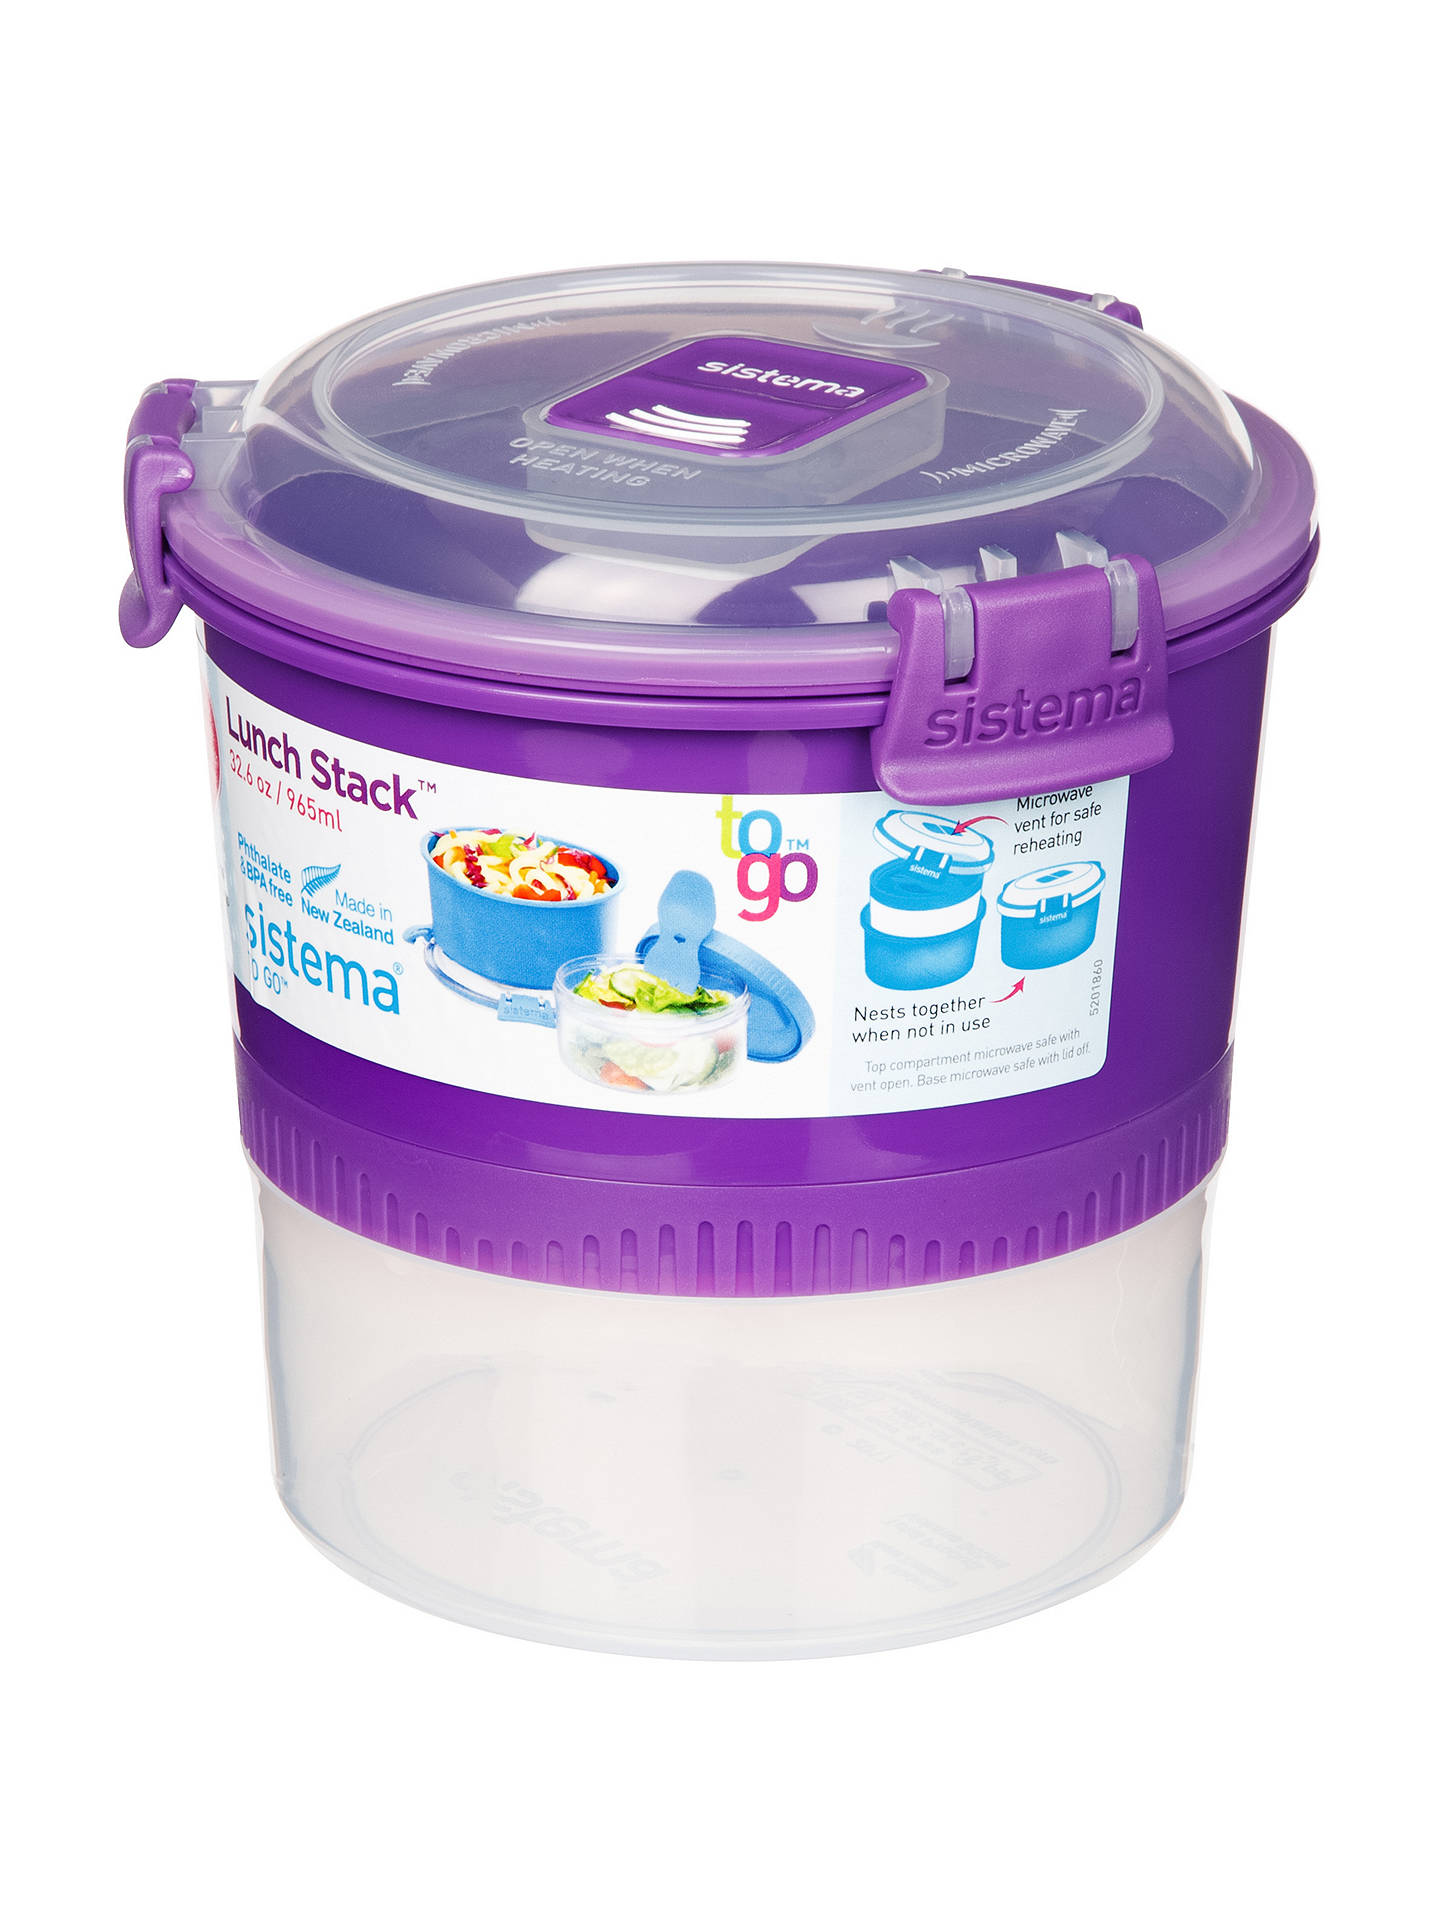 Sistema To Go Polypropylene Lunch Stack, 965ml, Assorted